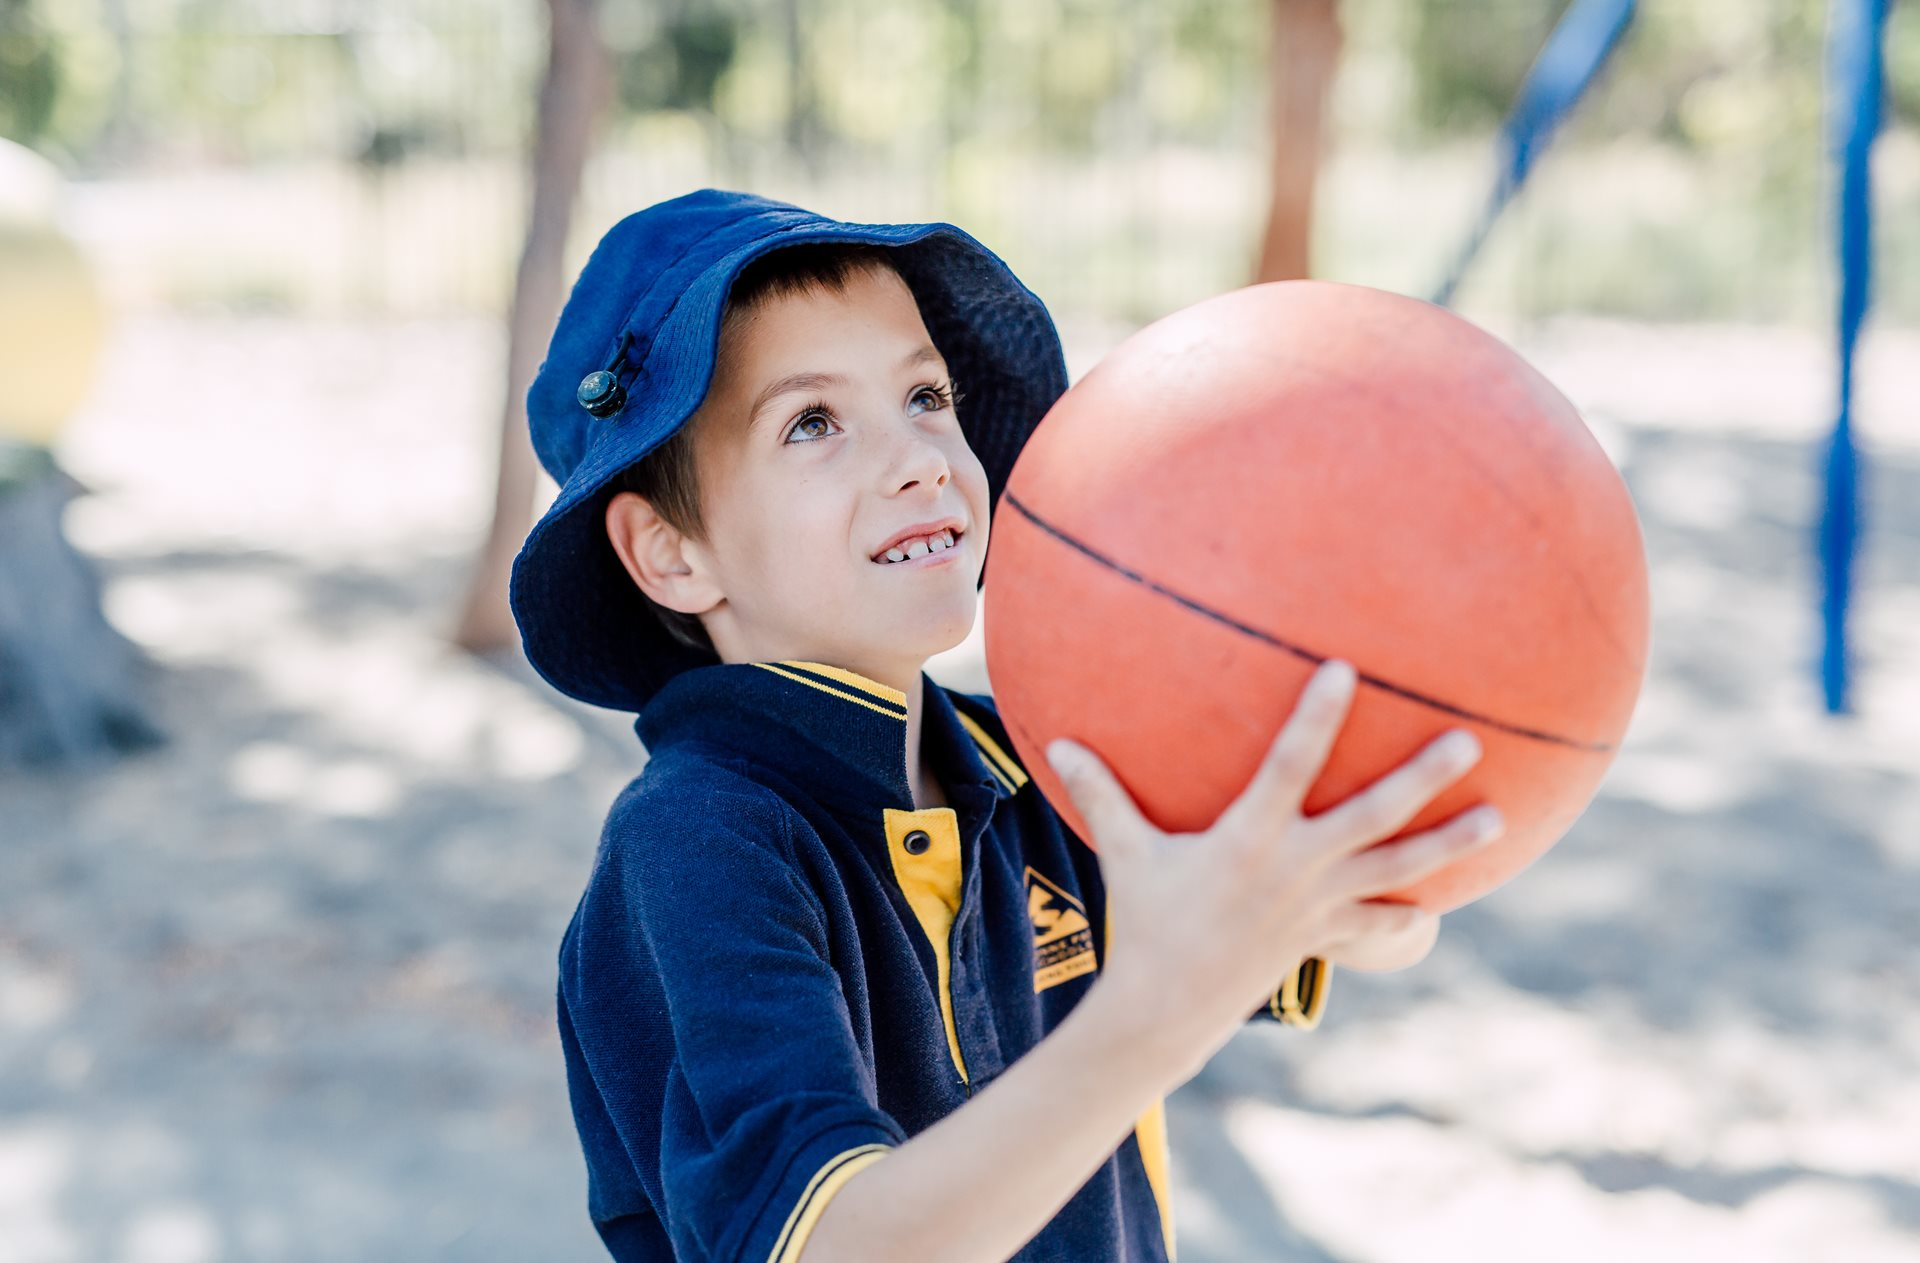 Child playing basketball outdoors at school mates